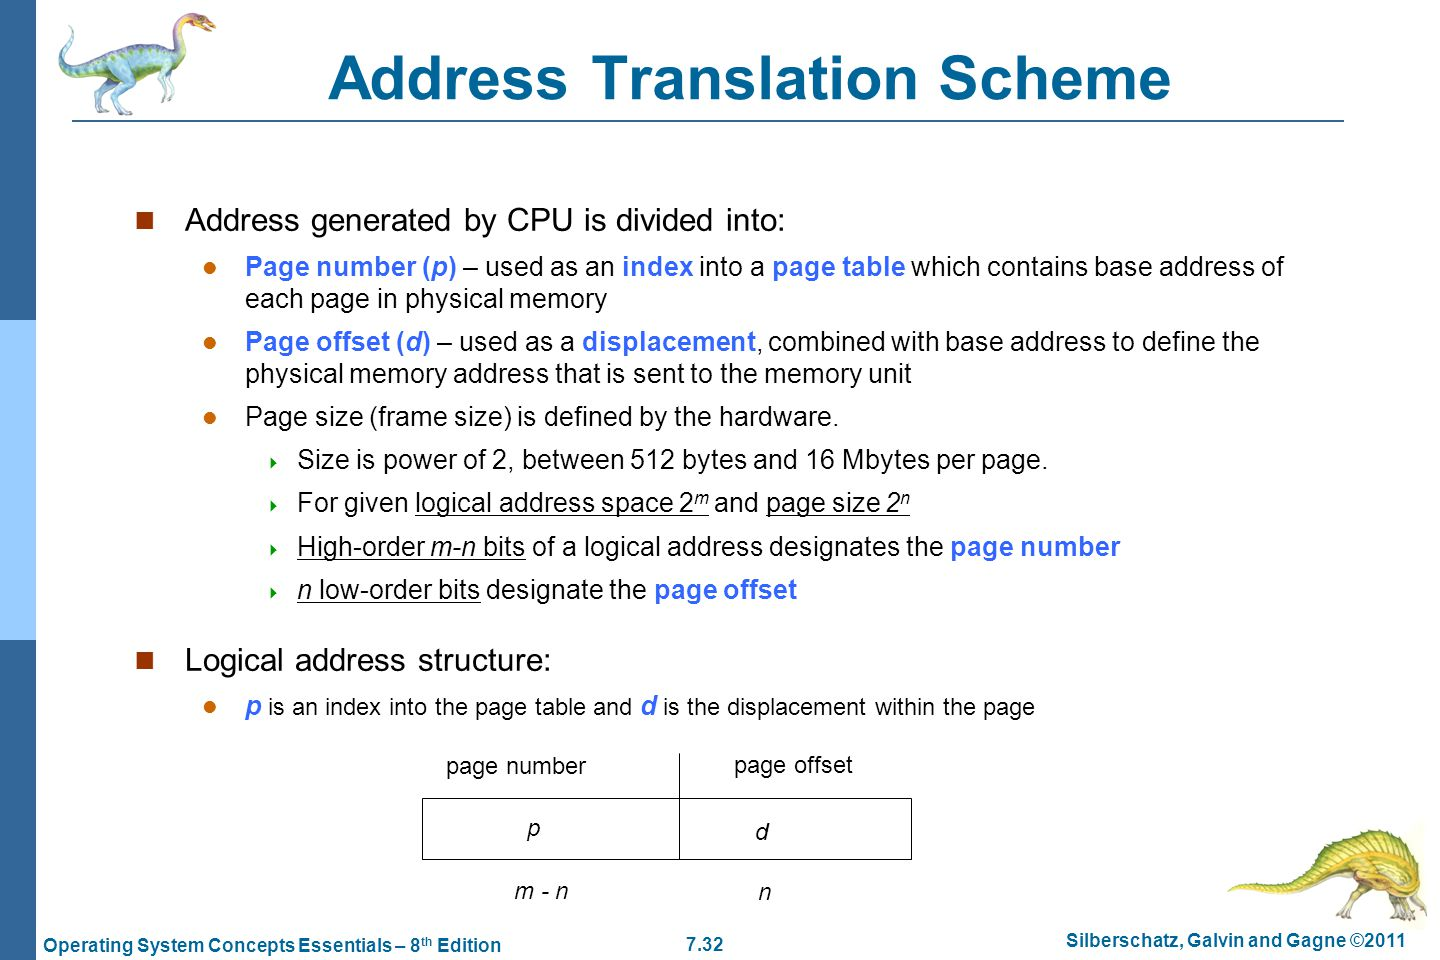 7.32 Silberschatz, Galvin and Gagne ©2011 Operating System Concepts Essentials – 8 th Edition Address Translation Scheme Address generated by CPU is divided into: Page number (p) – used as an index into a page table which contains base address of each page in physical memory Page offset (d) – used as a displacement, combined with base address to define the physical memory address that is sent to the memory unit Page size (frame size) is defined by the hardware.